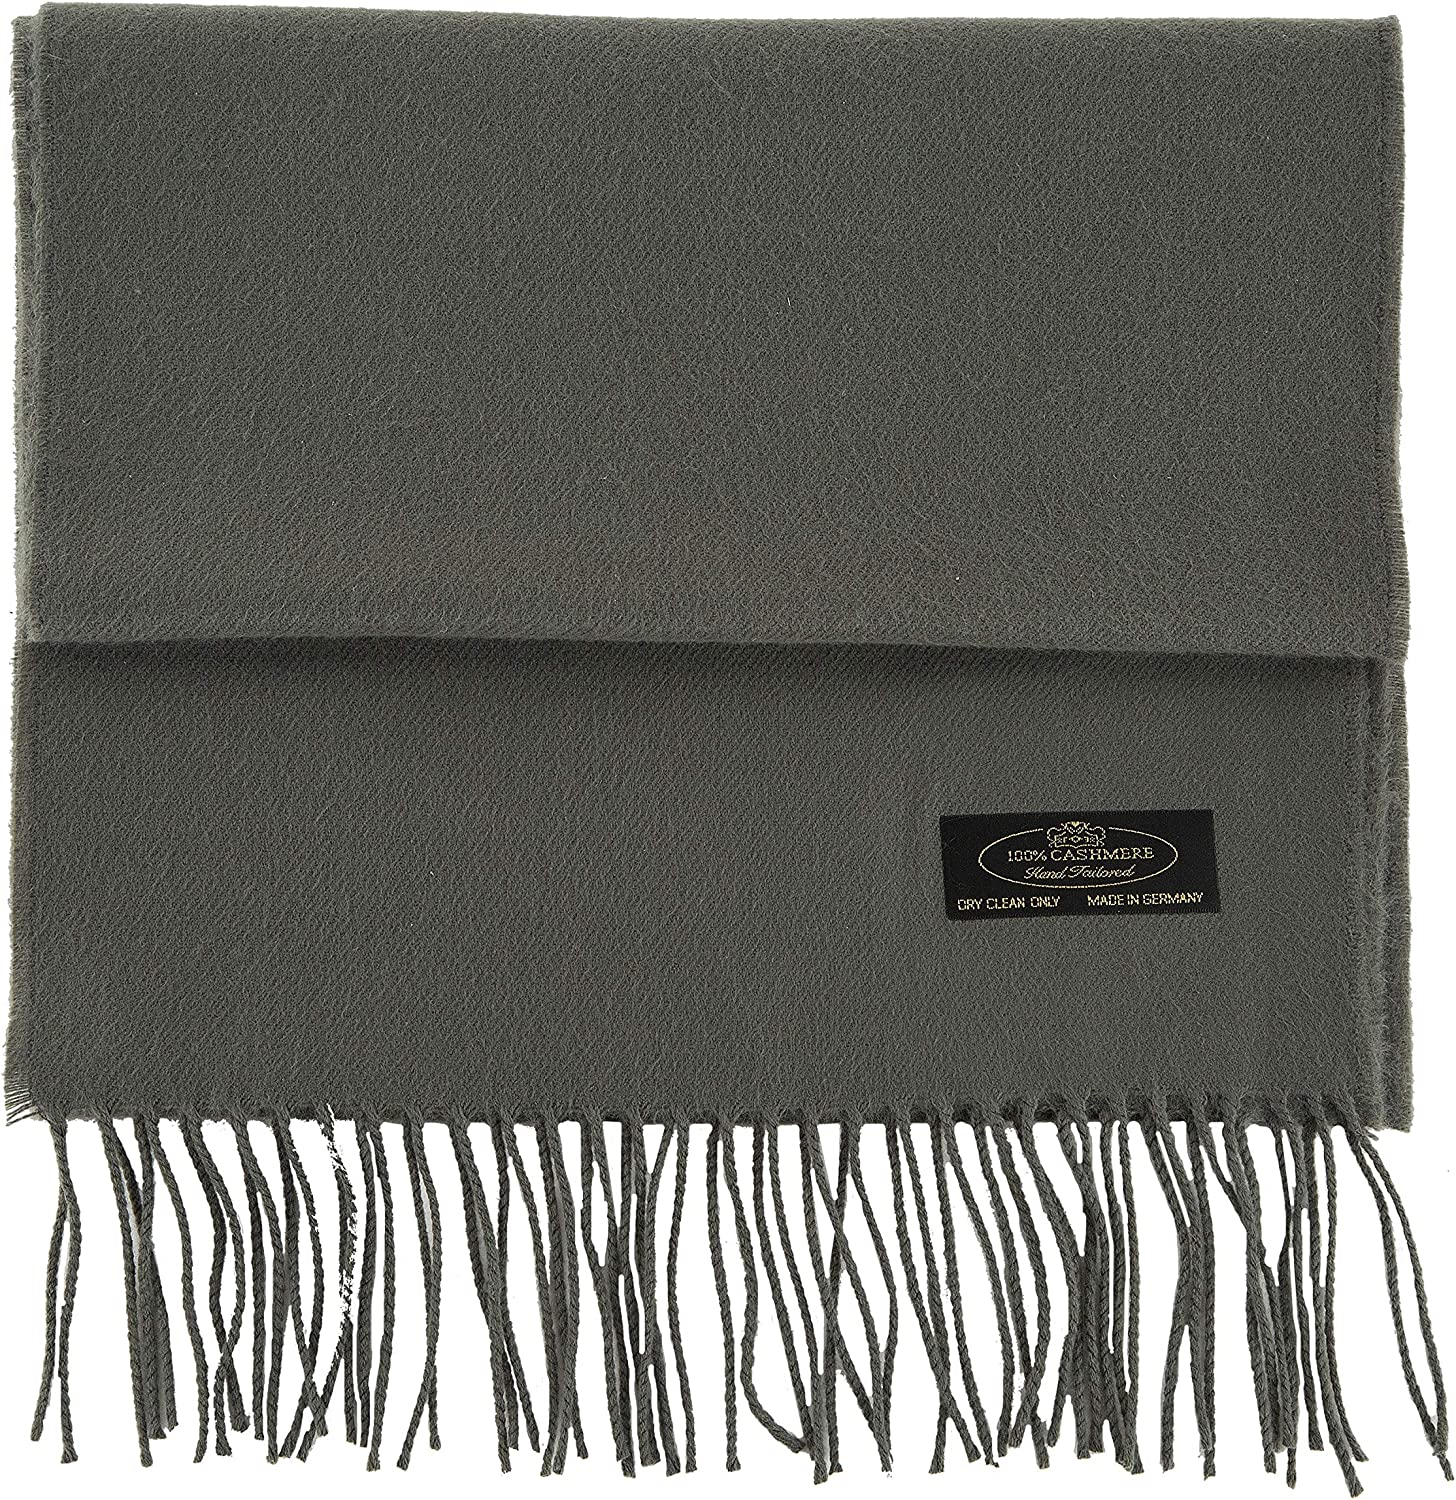 100% Cashmere Scarf Made in Germany Super Soft For Men And Women Warm Cozy Scarves Multiple Colors FHC Enterprize